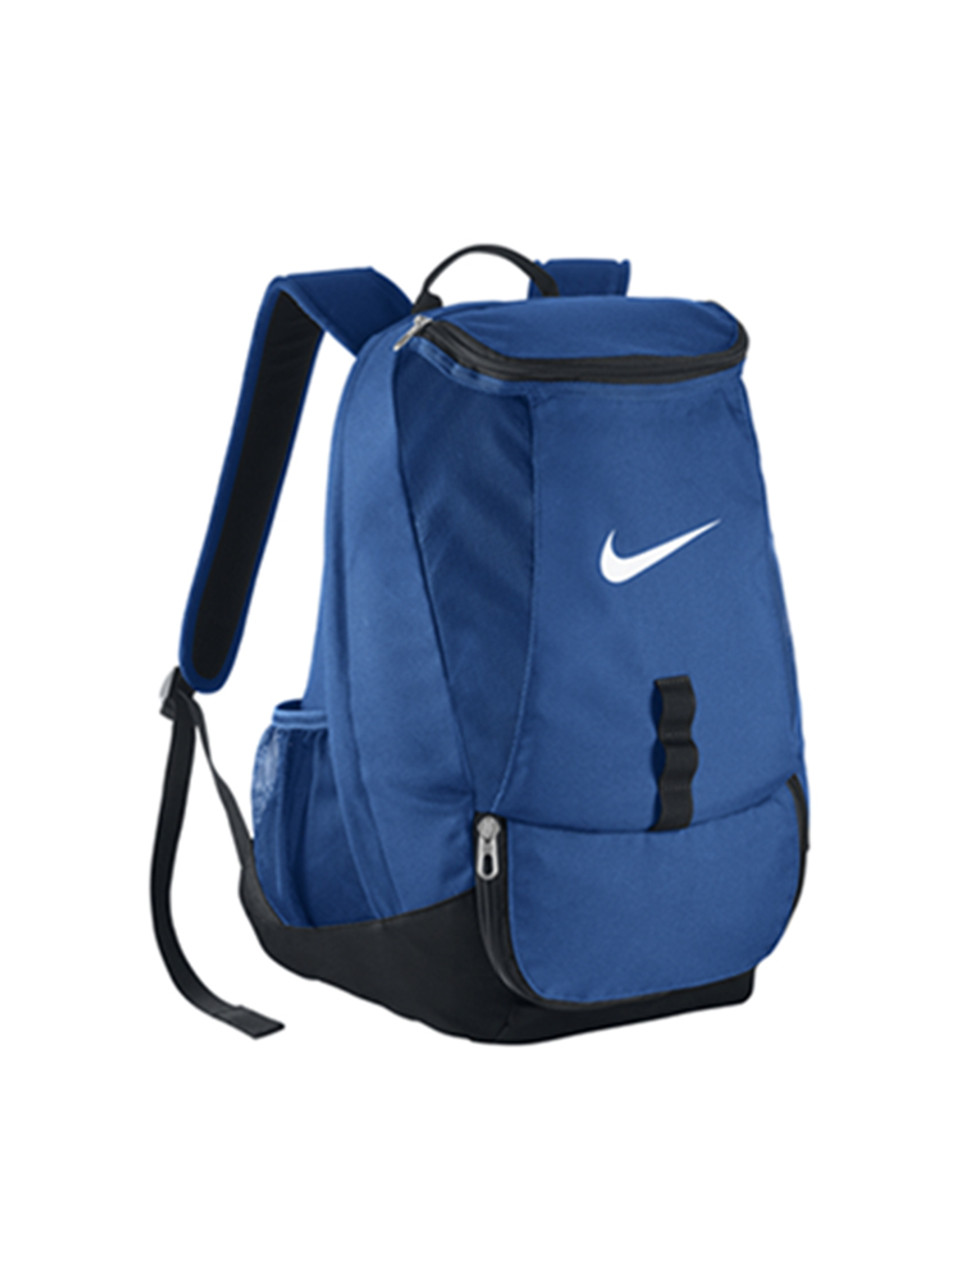 Nike Club Team Swoosh Back Pack - Midnight Navy For Sale  7294800891f38